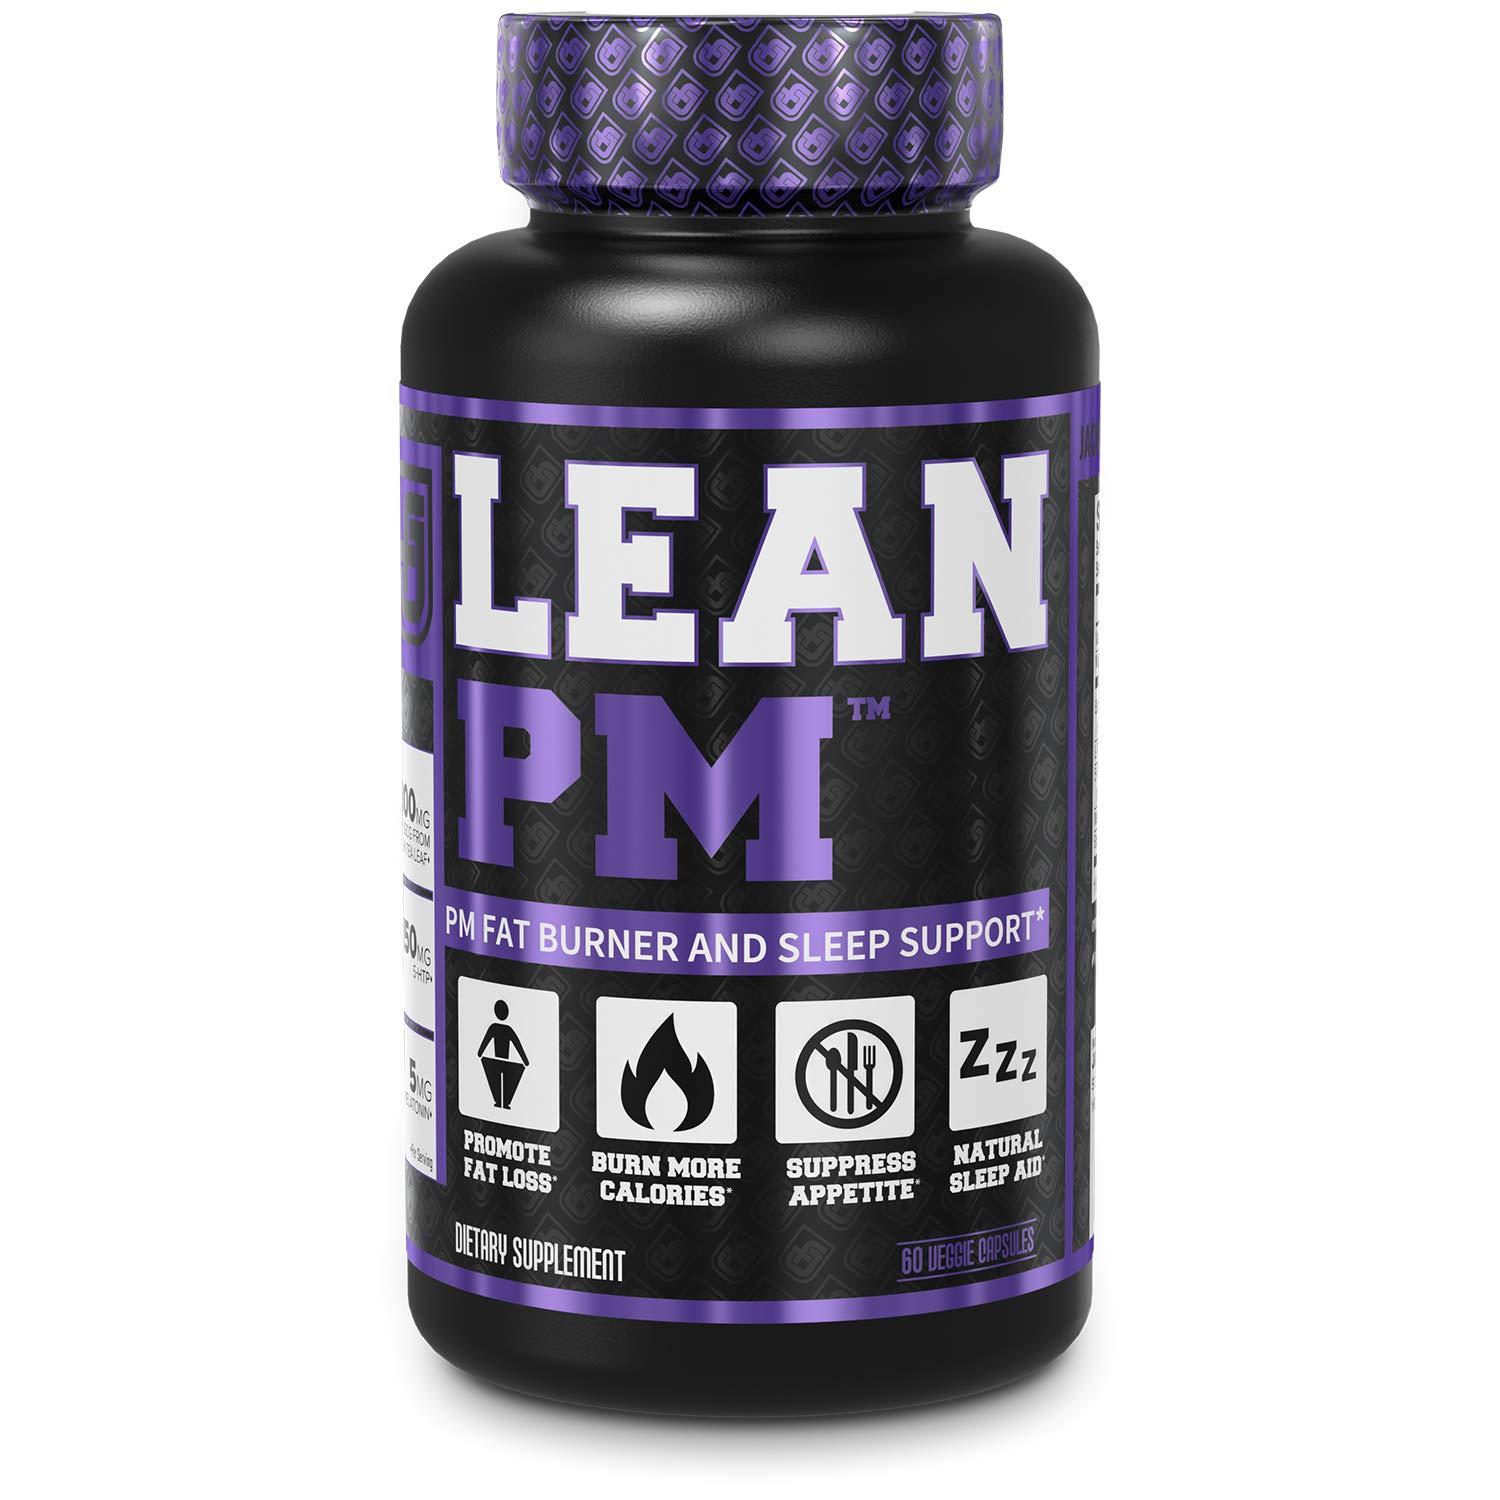 LEAN PM Night Time Fat Burner, Sleep Aid Supplement, & Appetite Suppressant for Men and Women - 60 Stimulant-Free Veggie Weight Loss Diet Pills by Jacked Factory